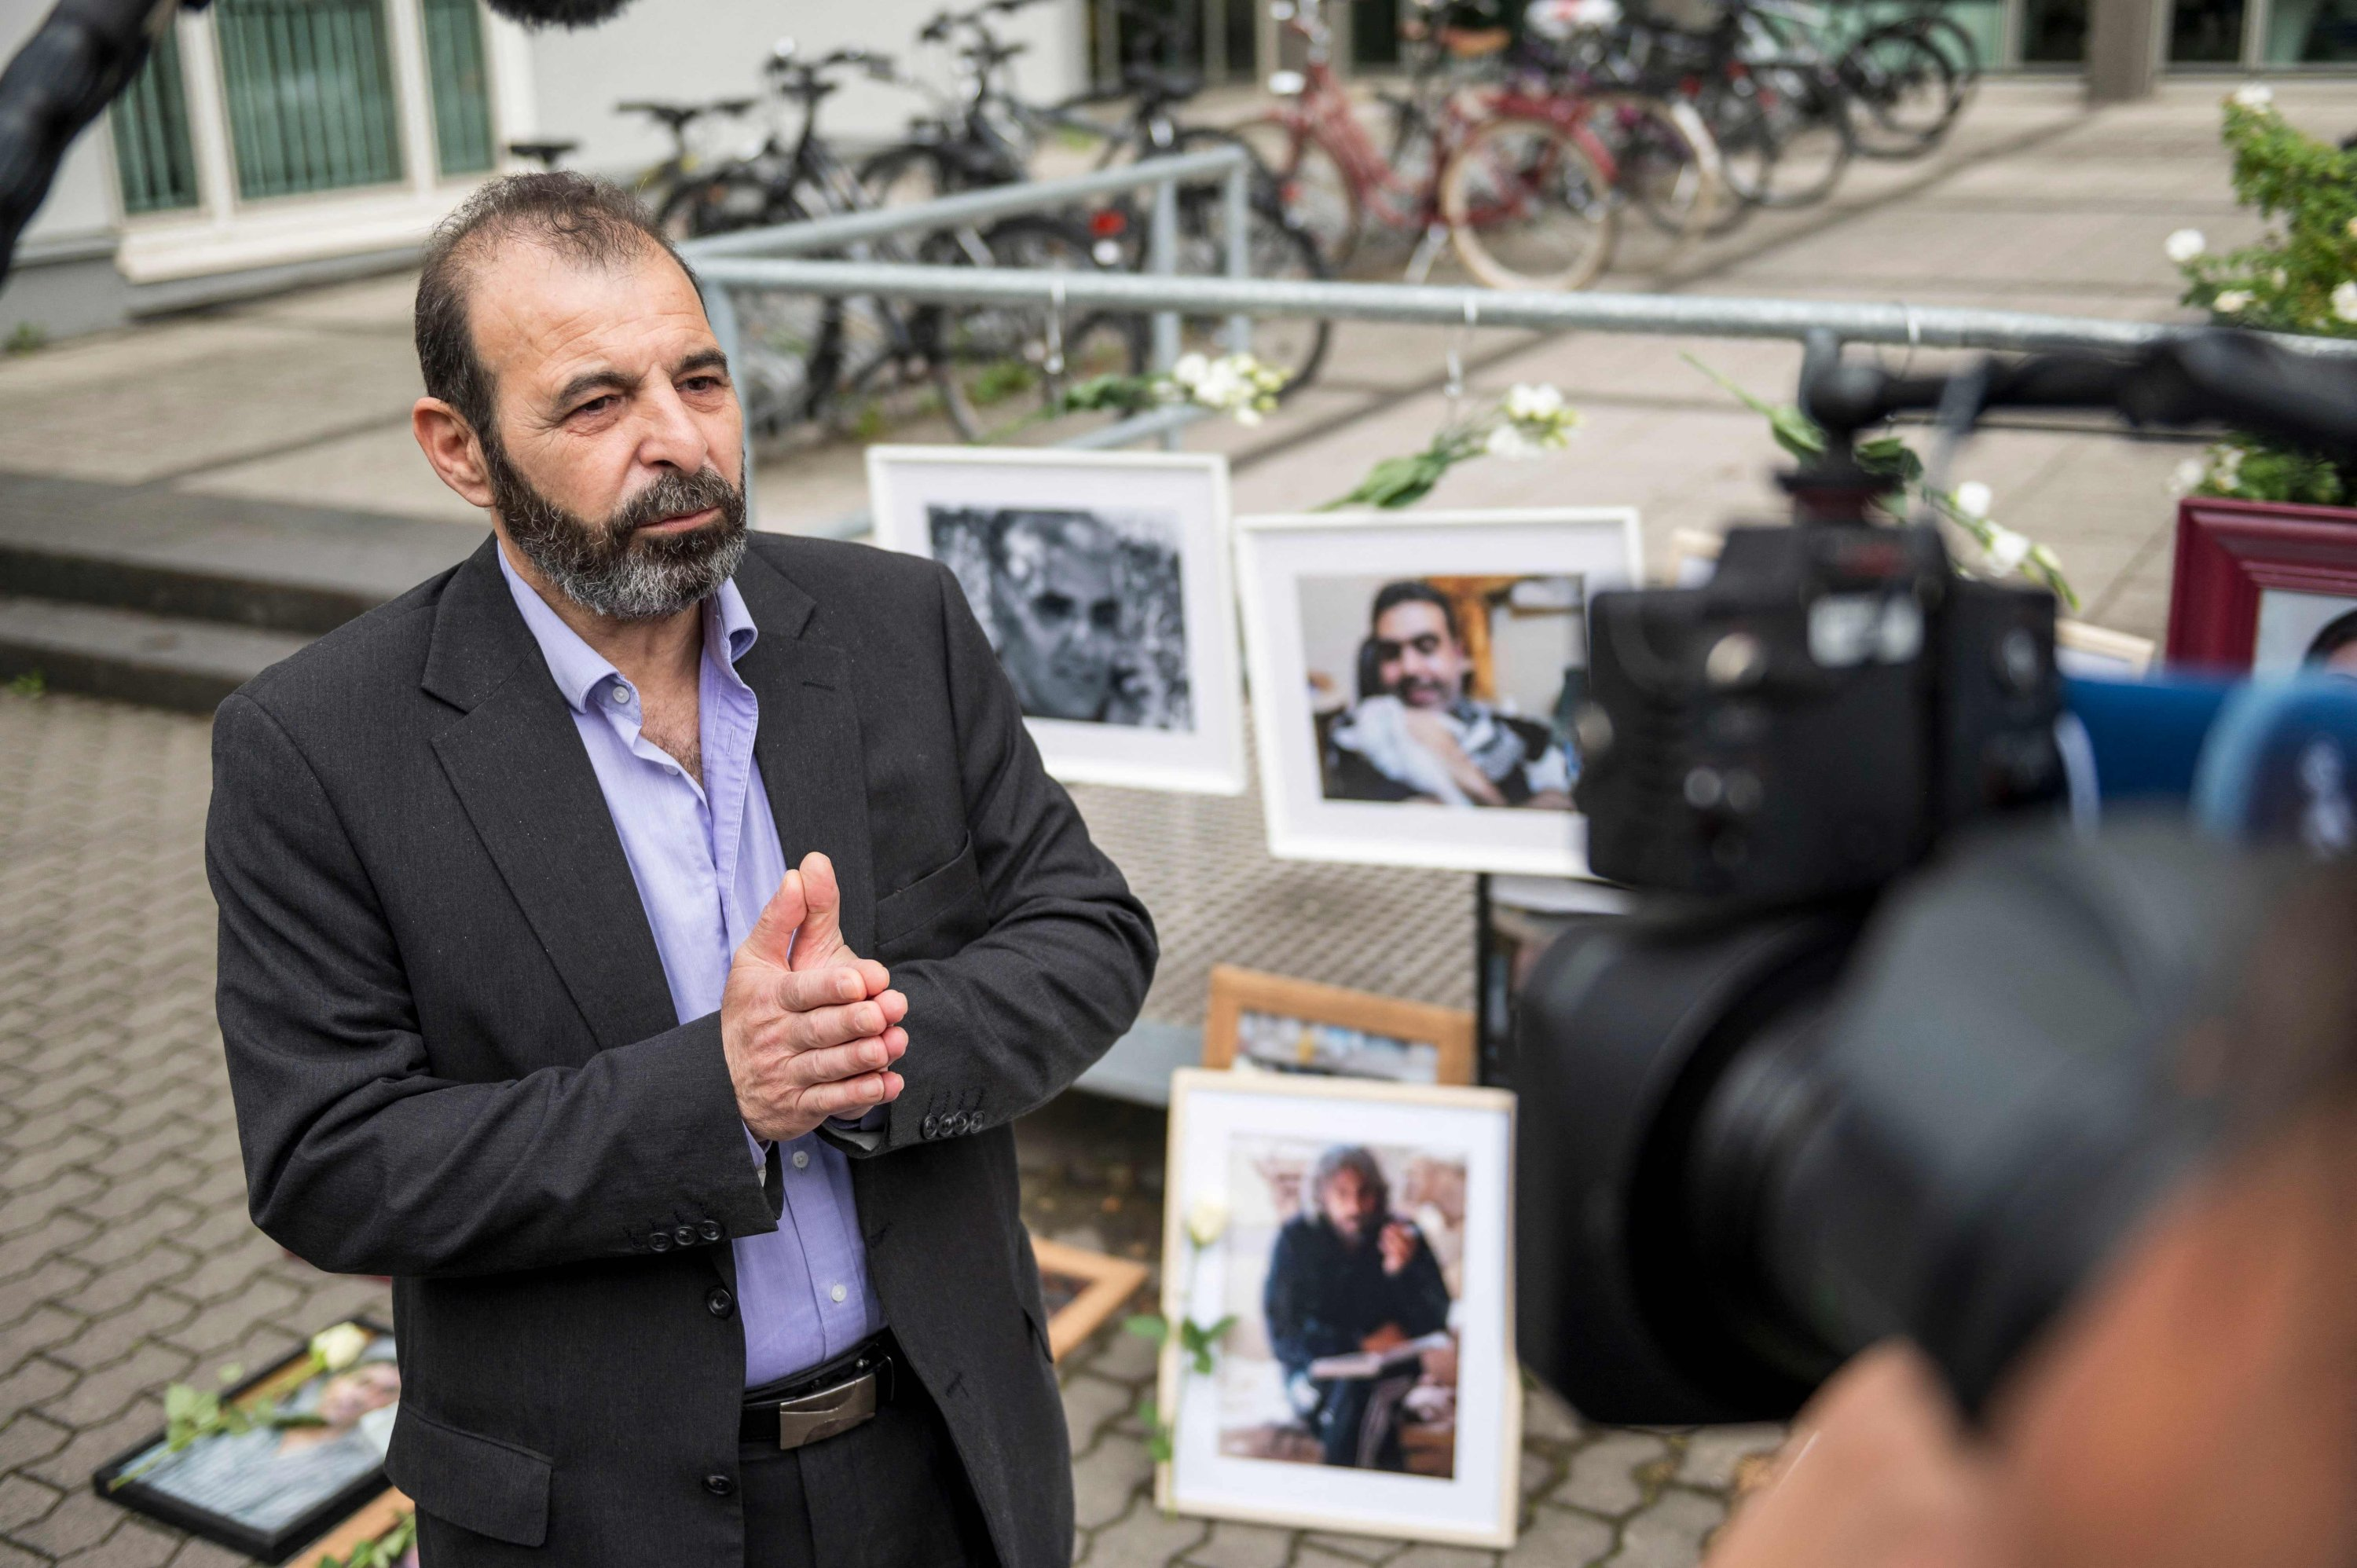 Syrian human rights lawyer Anwar al-Bunni as he speaks to the media in front of pictures of victims of the Syrian regime, during a protest outside the trial against two Syrian alleged former intelligence officers accused of crimes against humanity, in Koblenz, western Germany, June 4, 2020. (AFP)